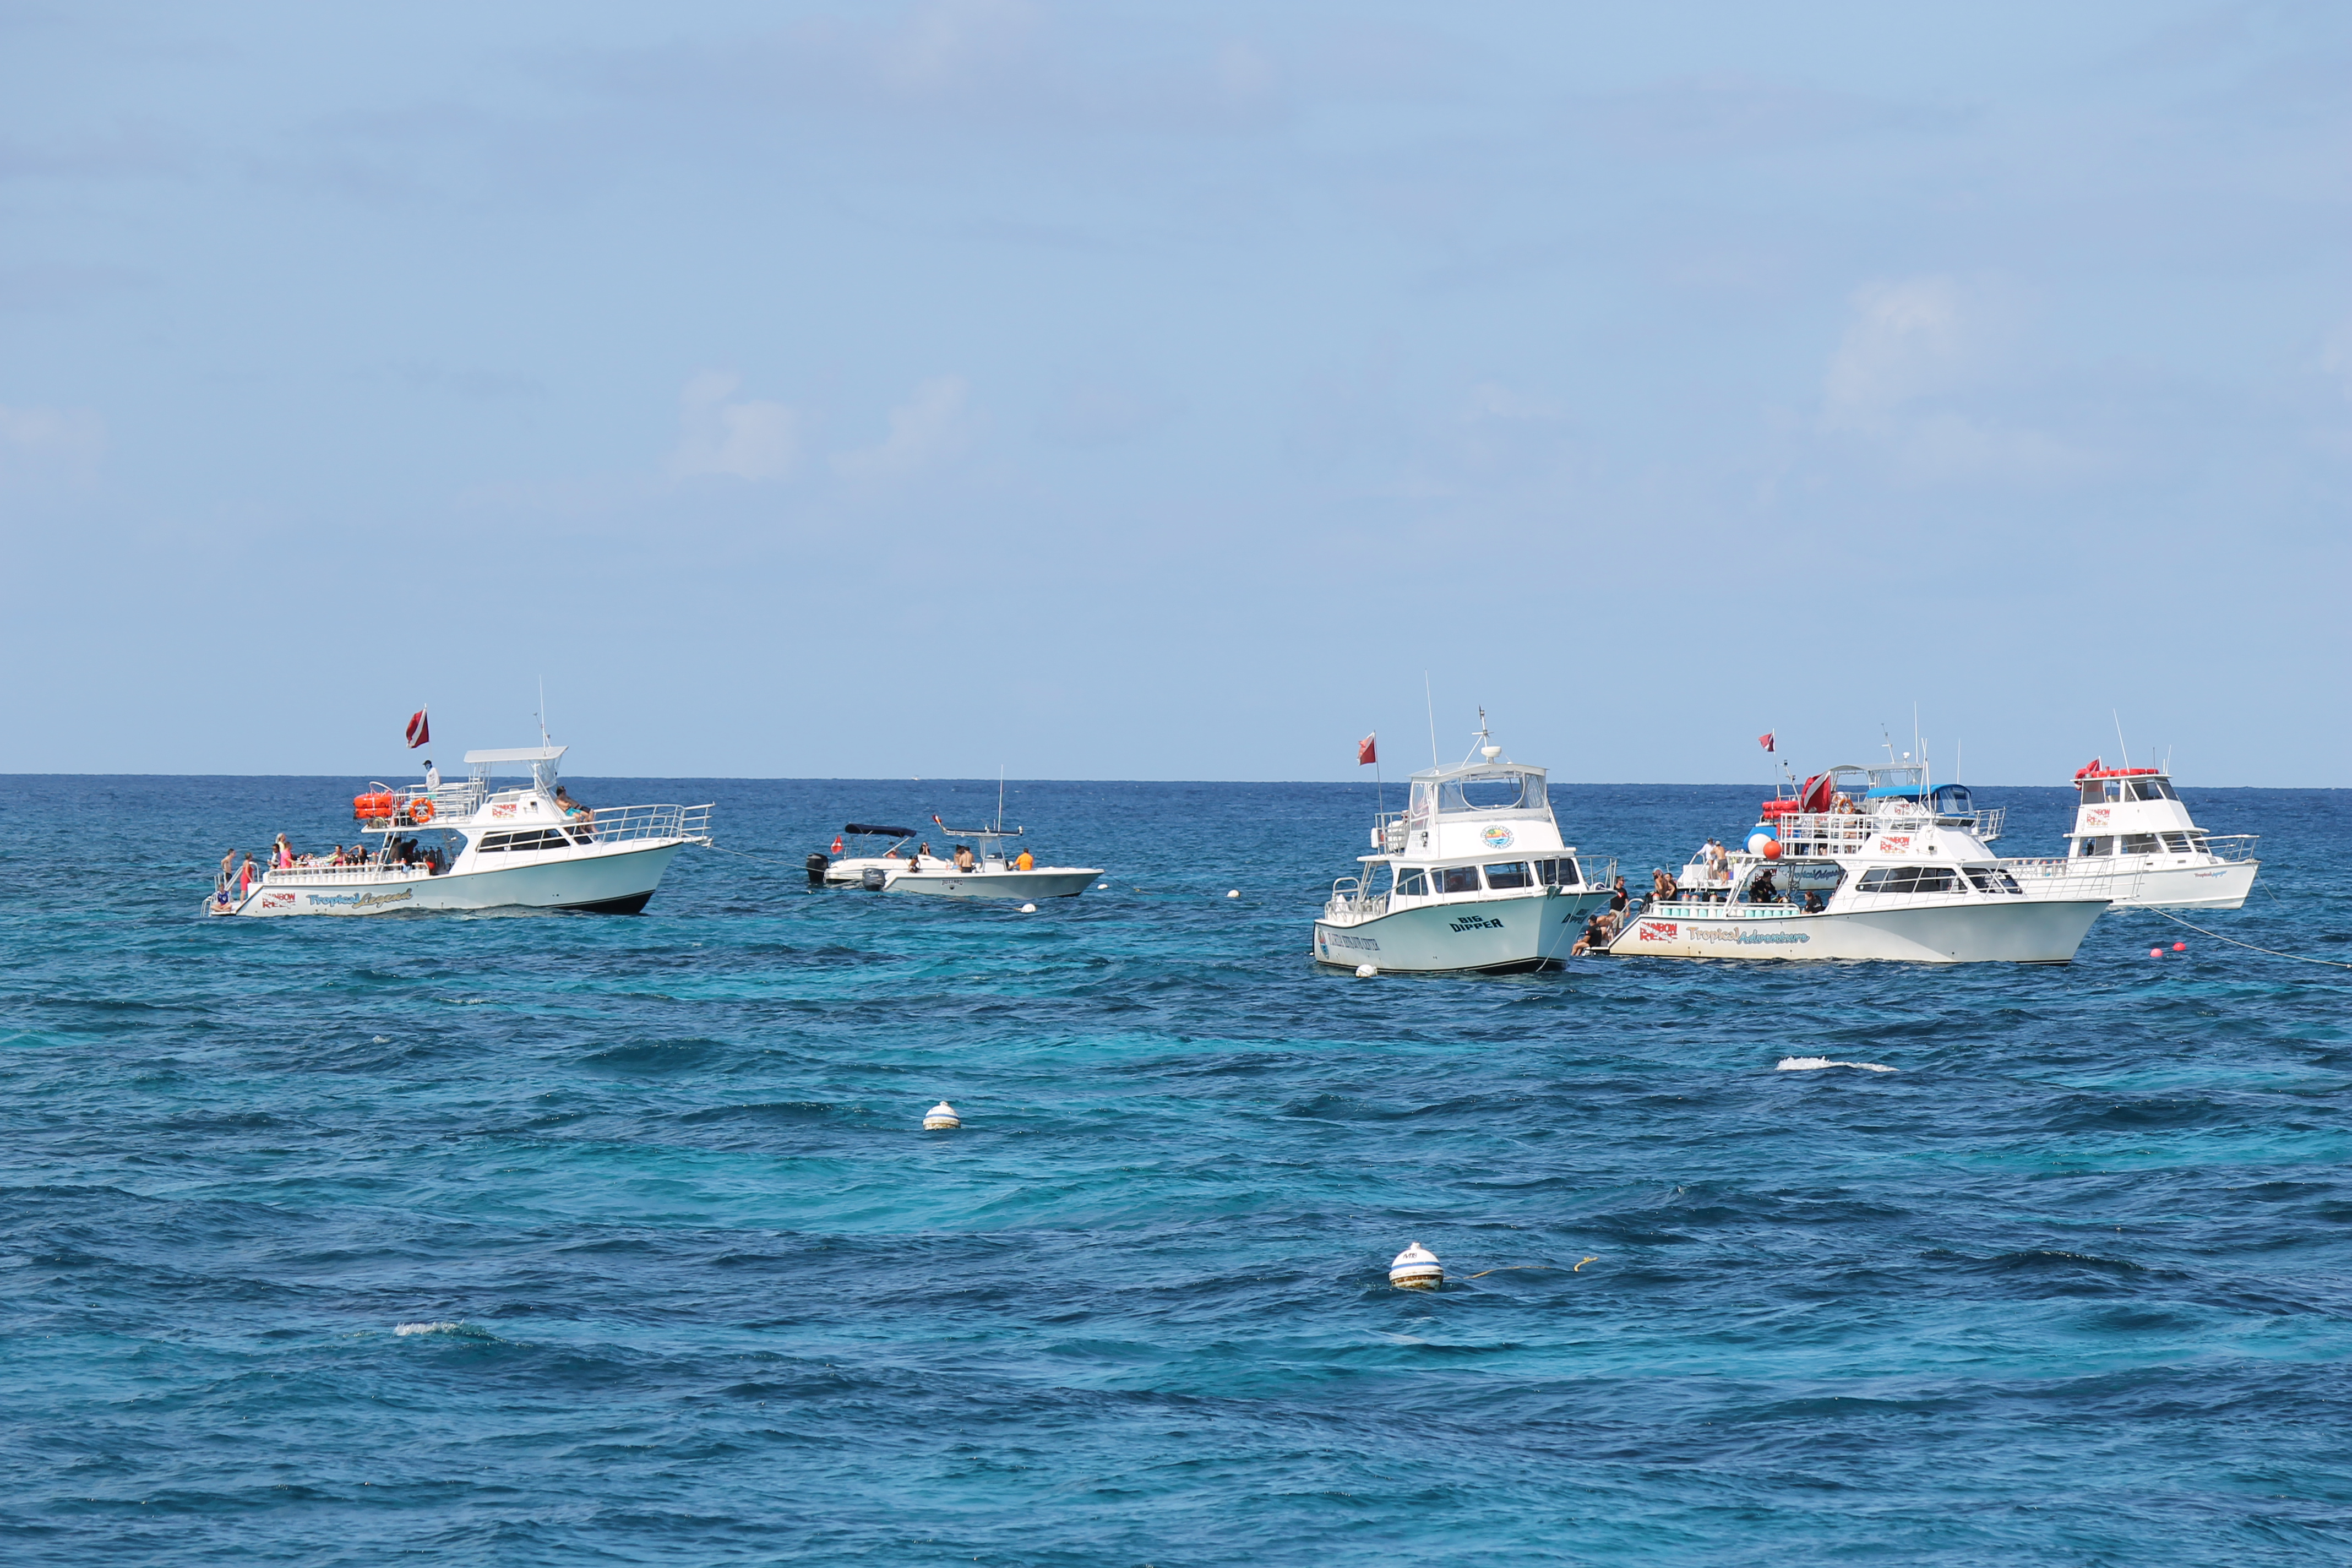 Boats at John Pennekamp Coral Reef State Park in Key Largo, Florida